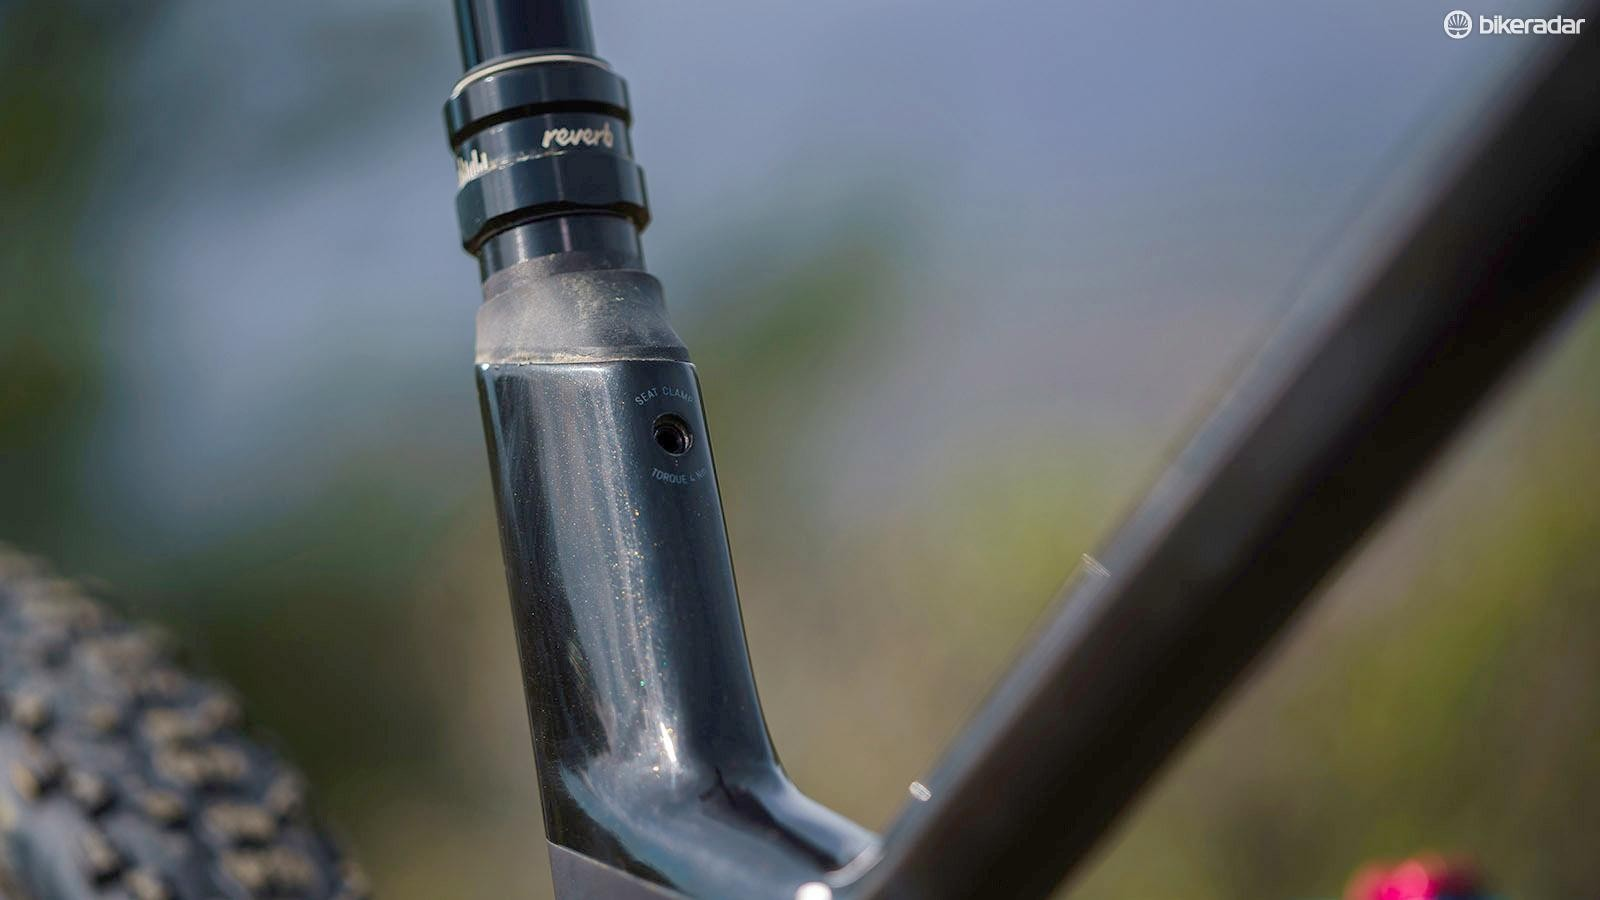 The stepped seat tube conceals an internal seatpost clamp